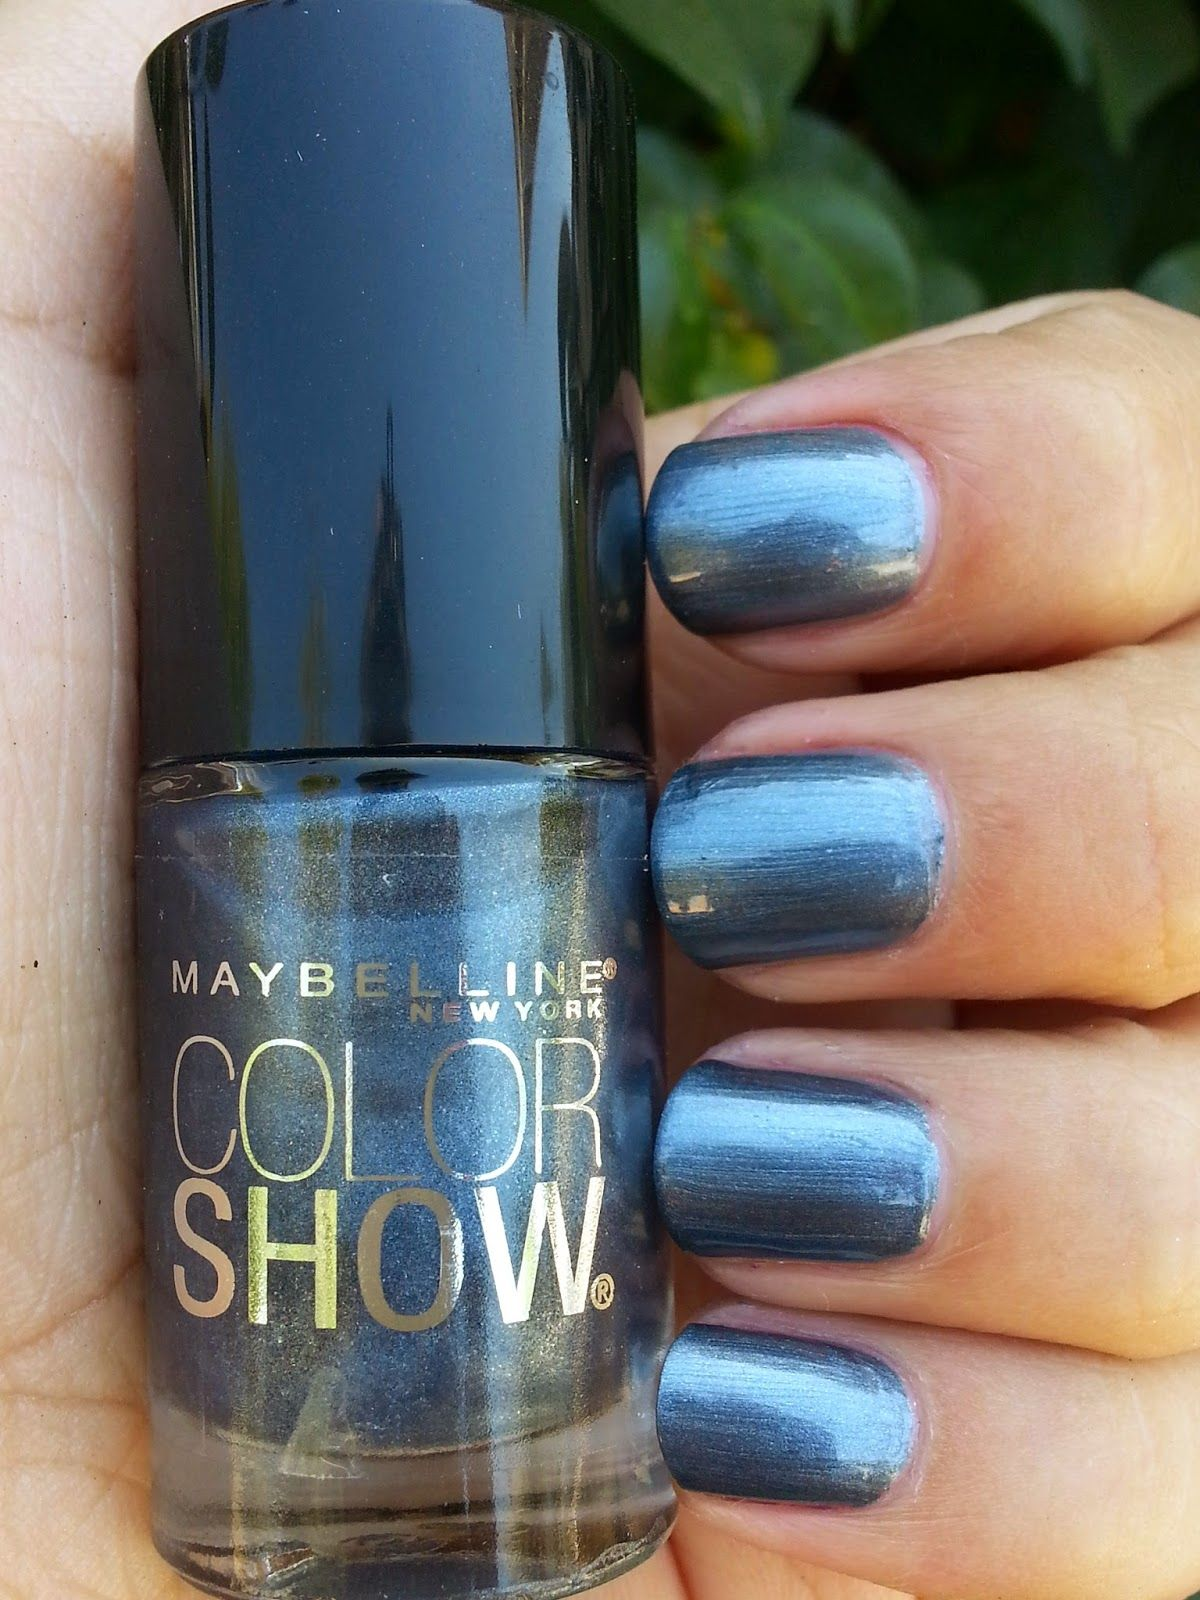 Maybelline Color Show Nail Polish in 365 Home Sweet Chrome